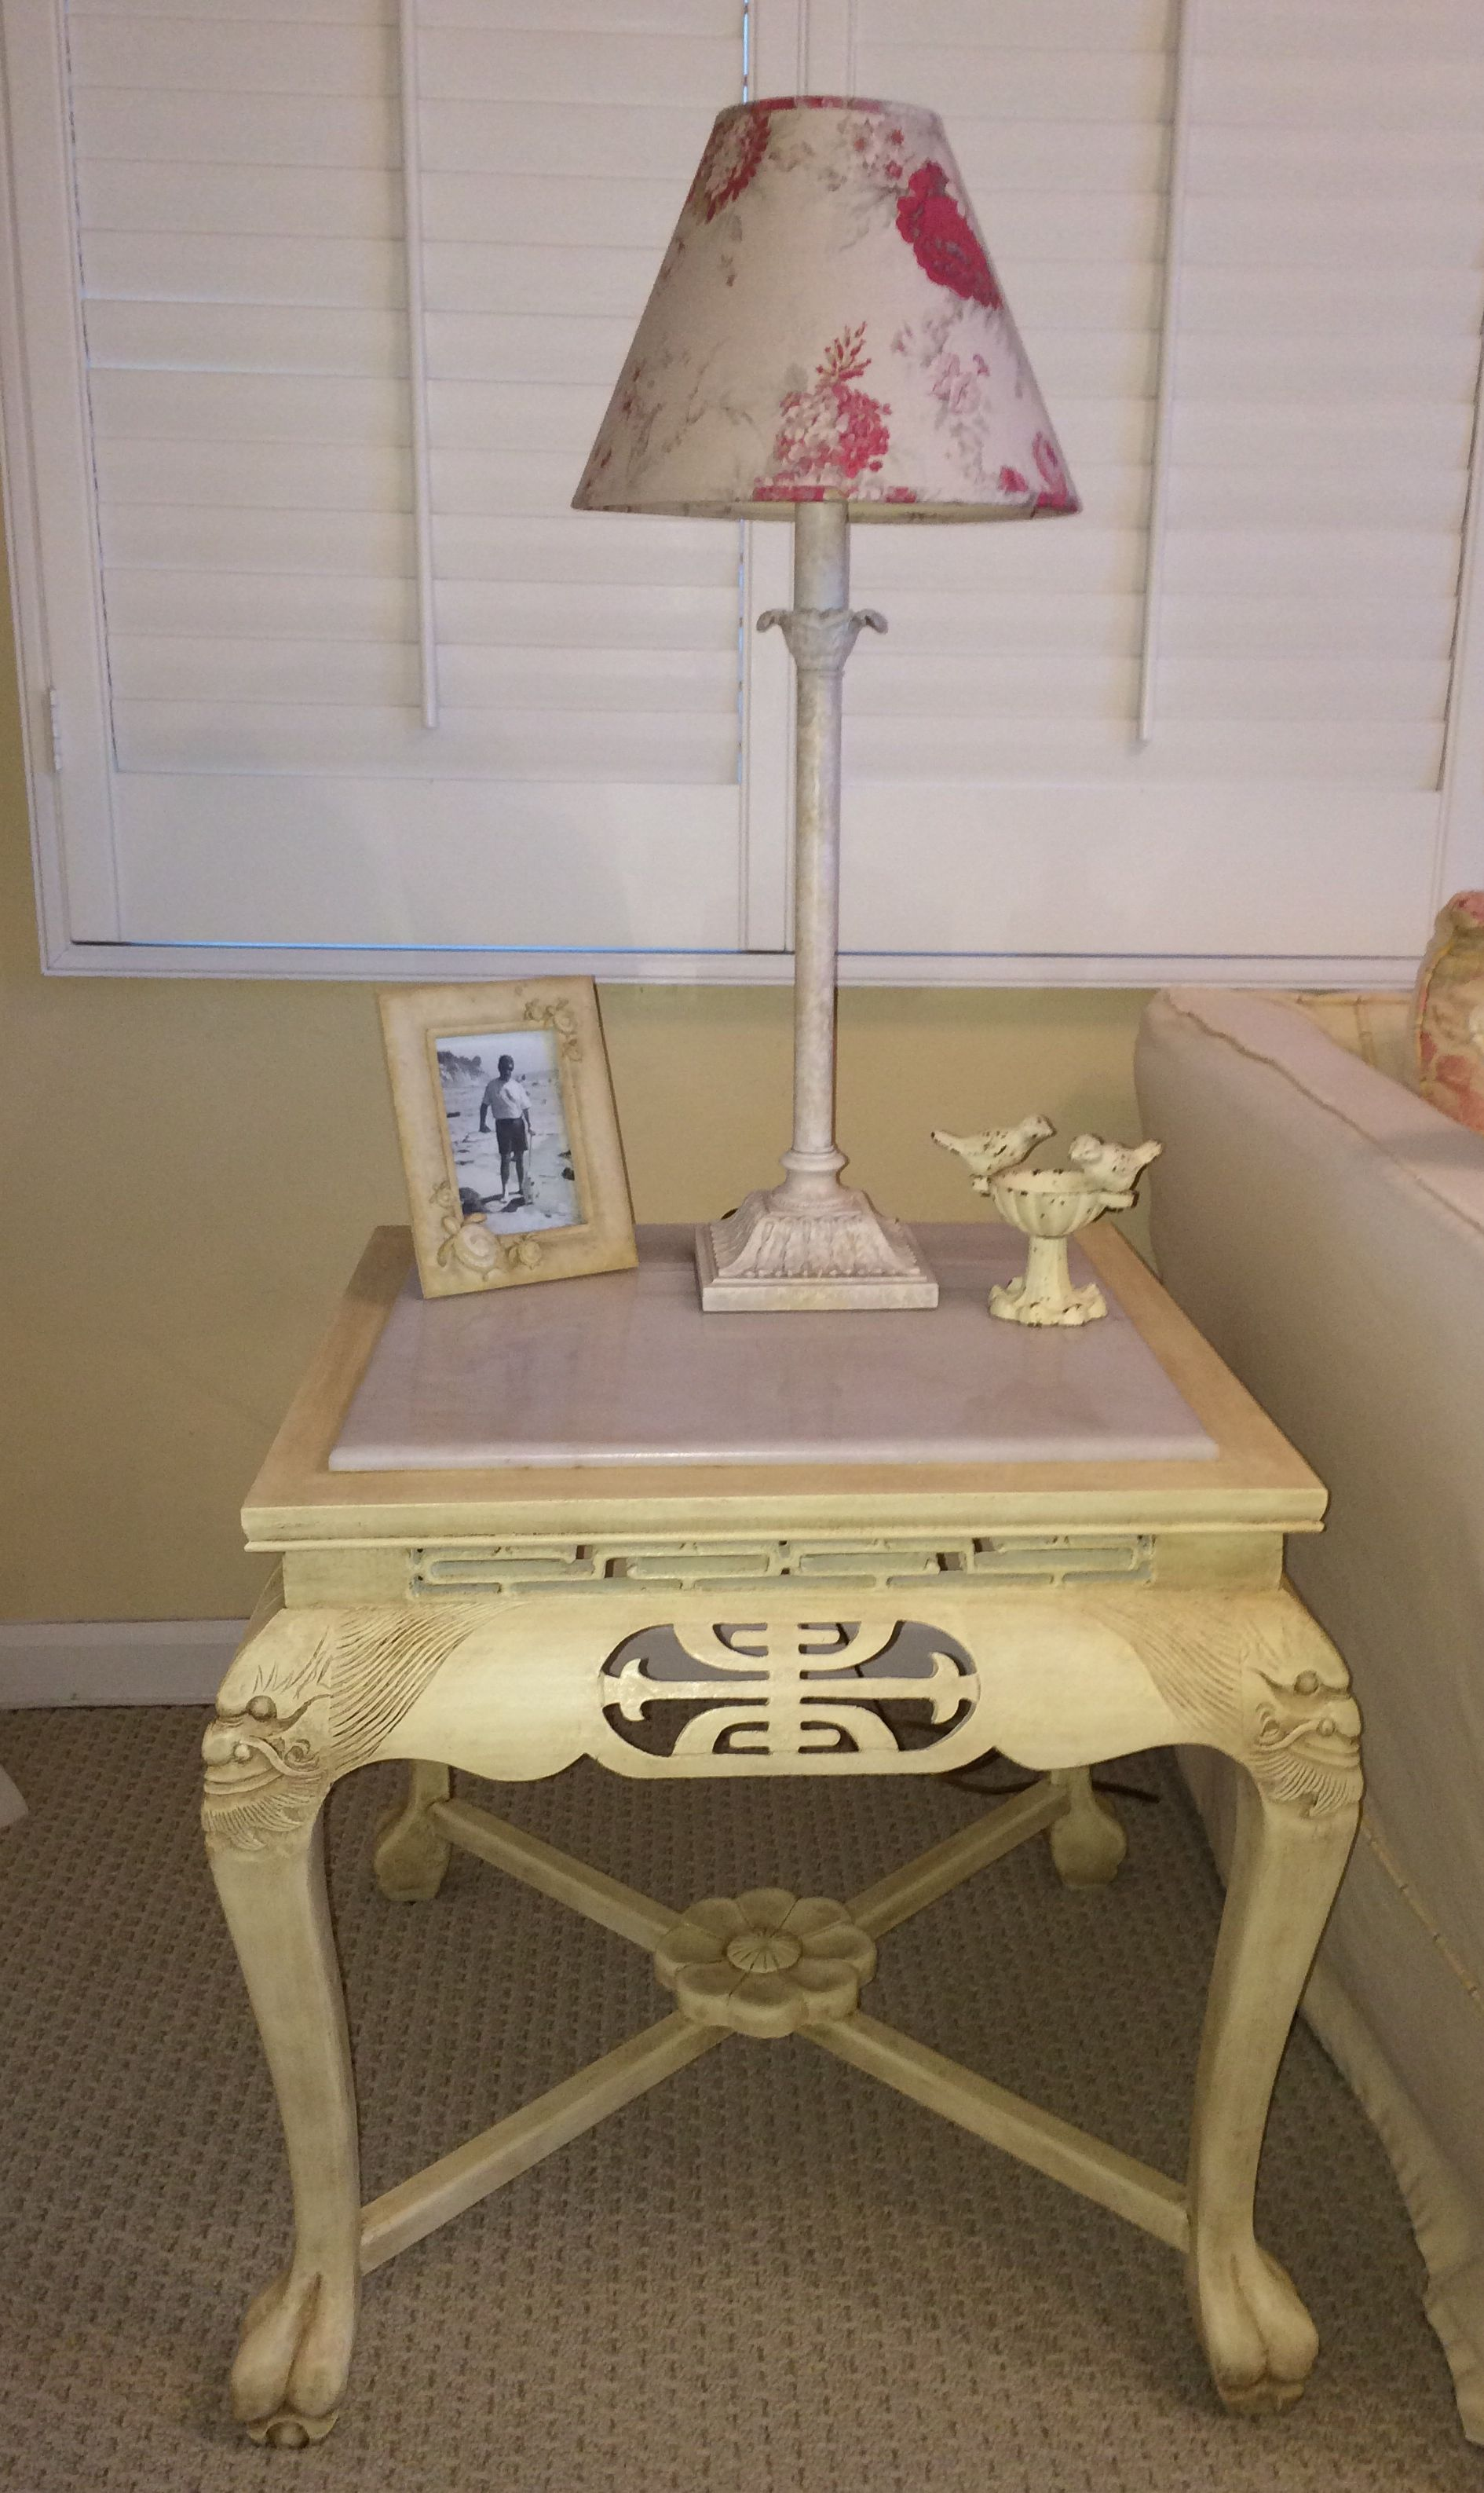 Annie Sloan Chalk Paint Cream Light And Dark Wax Fun Funky Asian Table With White Marble Top Fou Annie Sloan Chalk Paint Cream Asian Design Light In The Dark